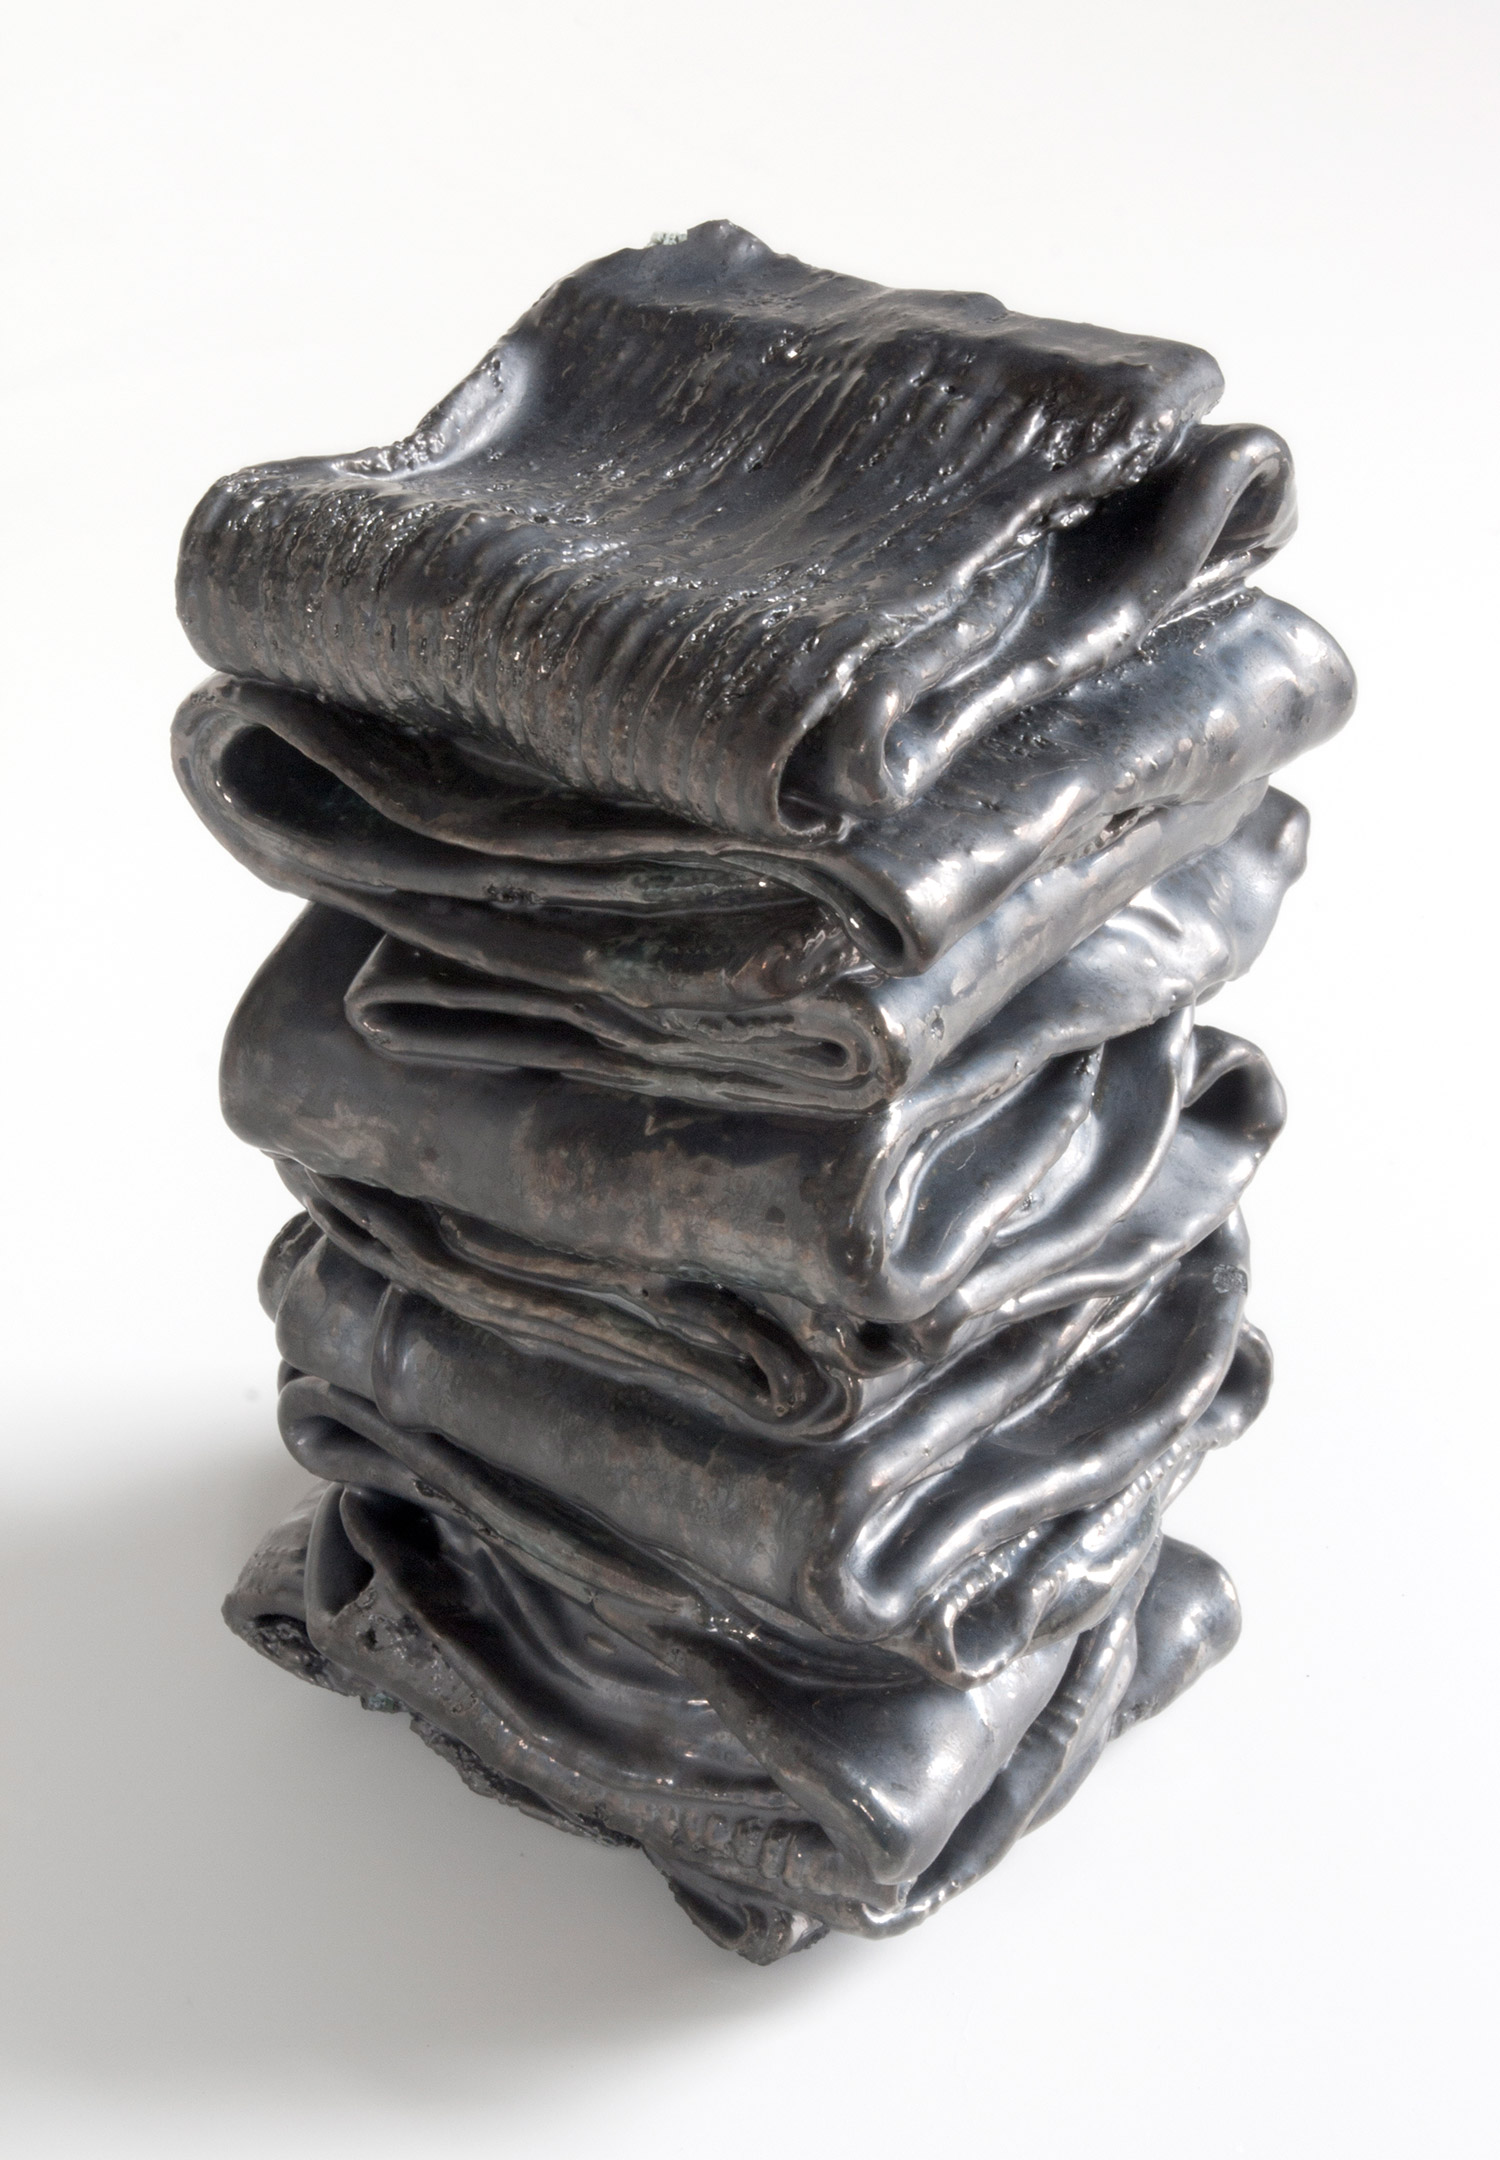 Tidy 2   2015 glazed porcelain 4 x 4 x 6.5 inches